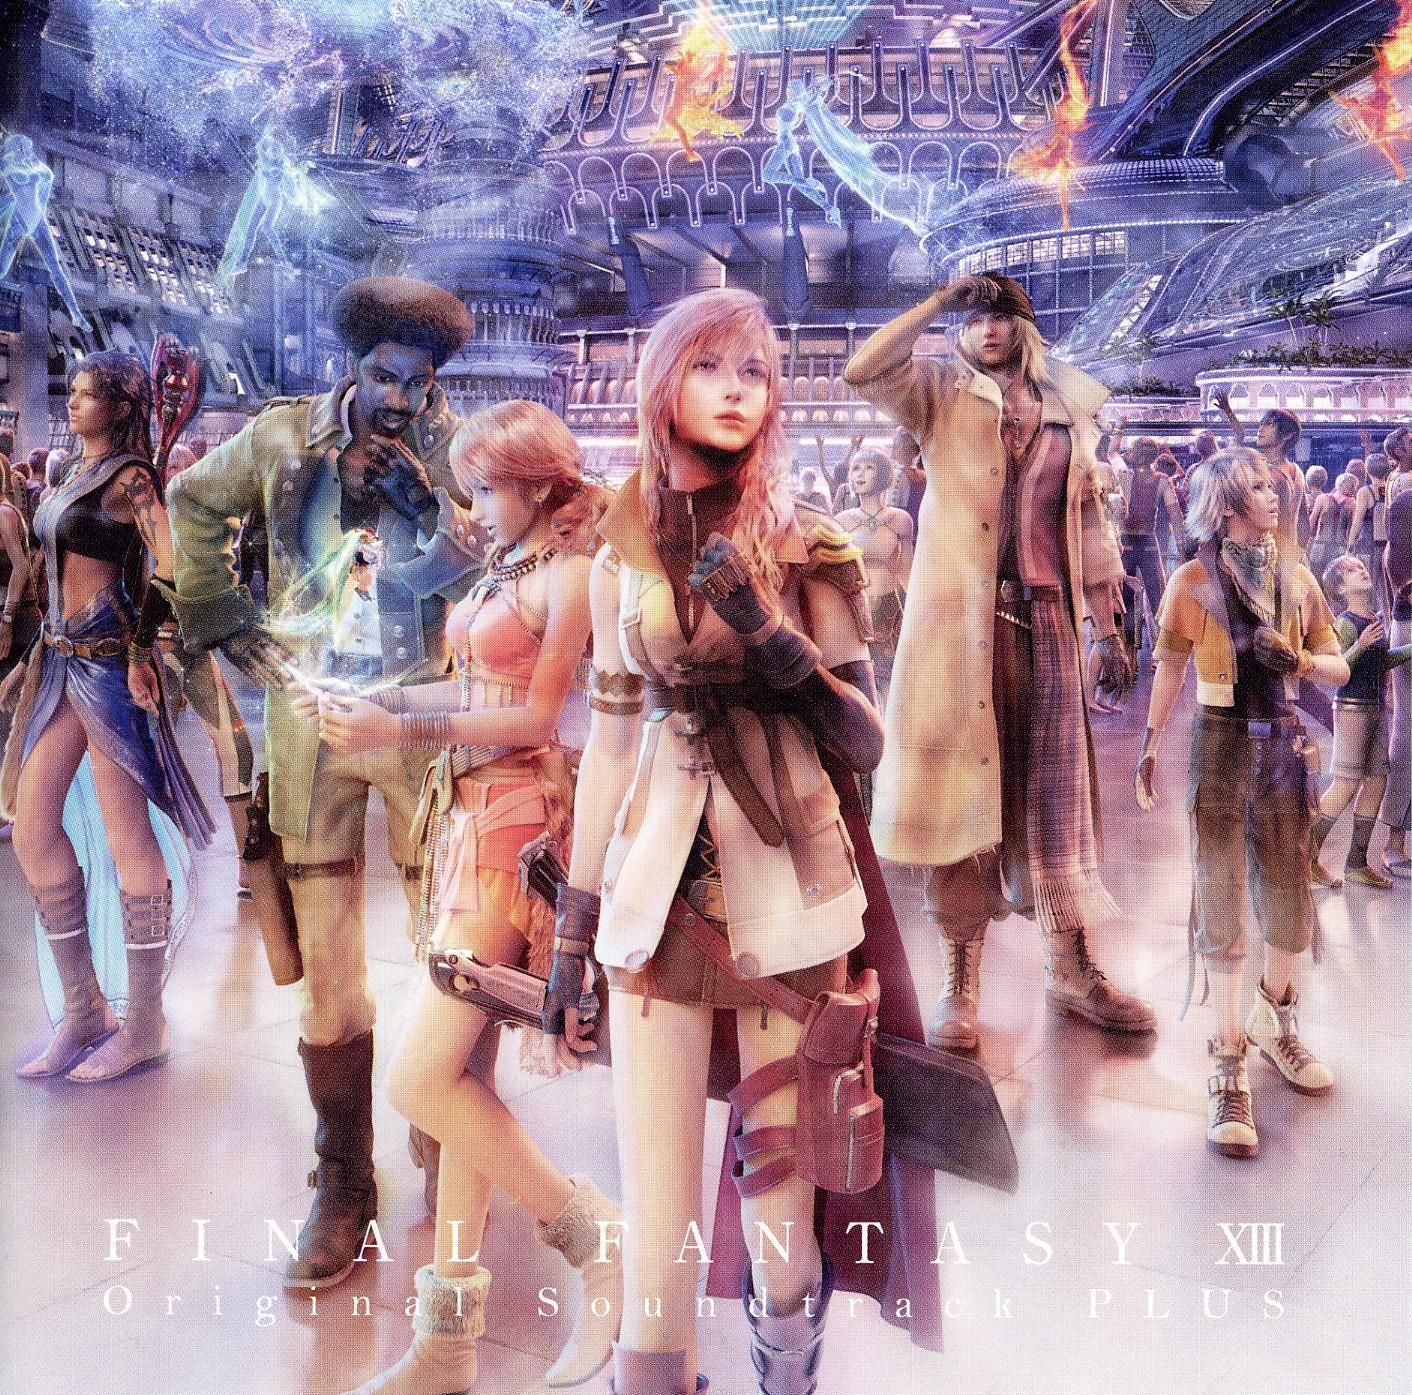 Final Fantasy XIII Original Soundtrack (Plus) - Masashi Hamauzu